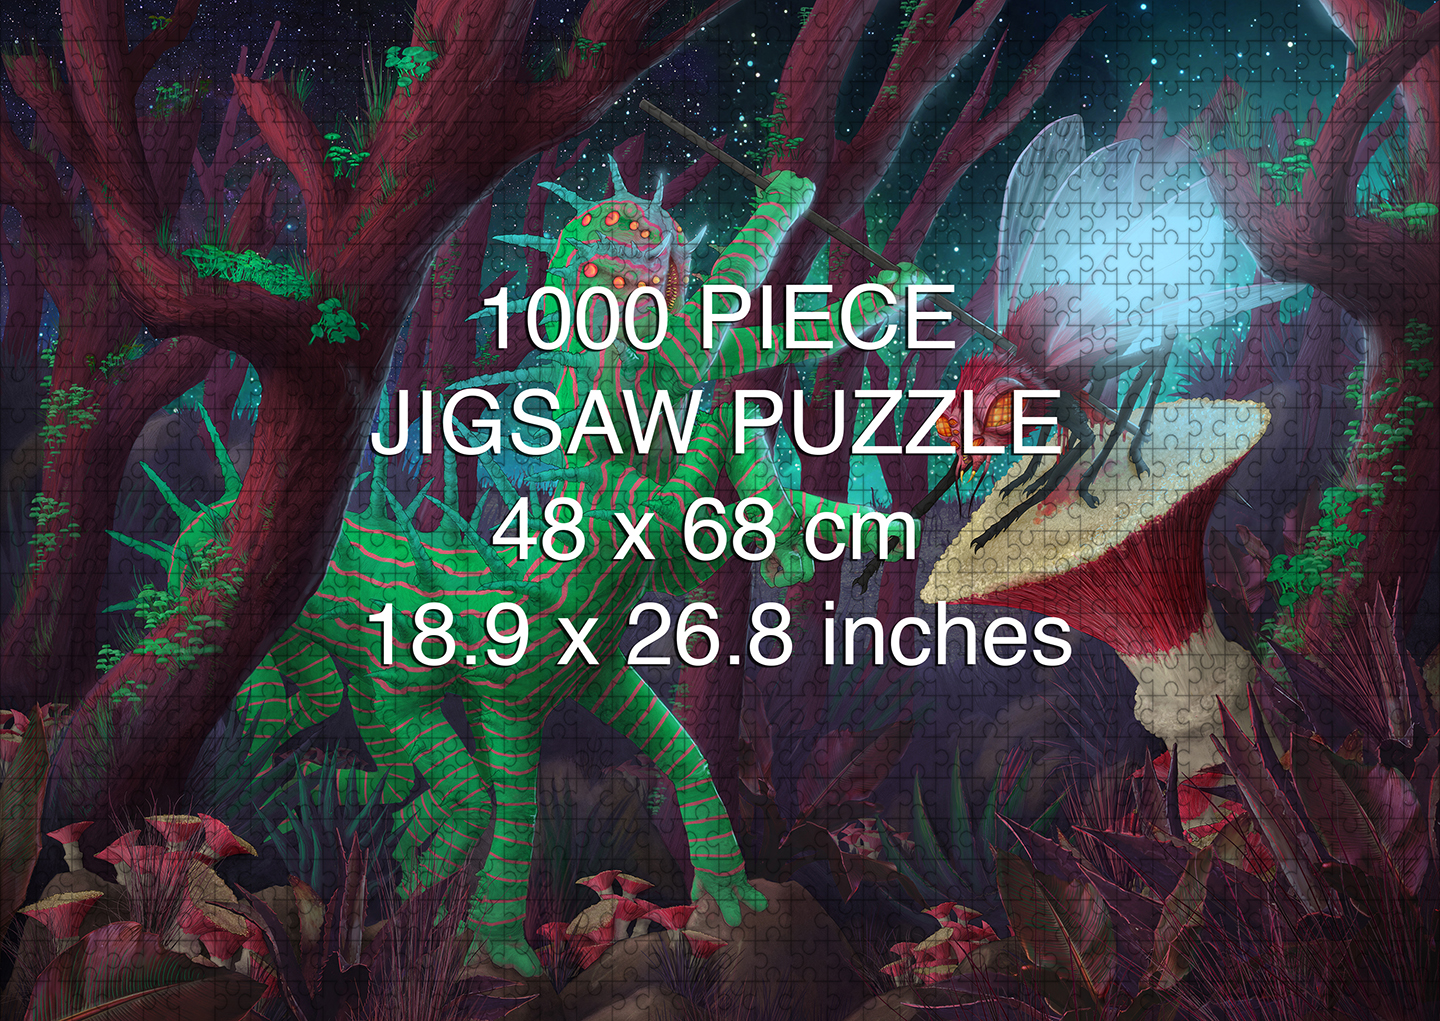 A Deilicate Balance. The KRex Brucus Hunts the Koba Fliege 1000 piece puzzle by Aaron Wolf and Pandemic Puzzlesingdom